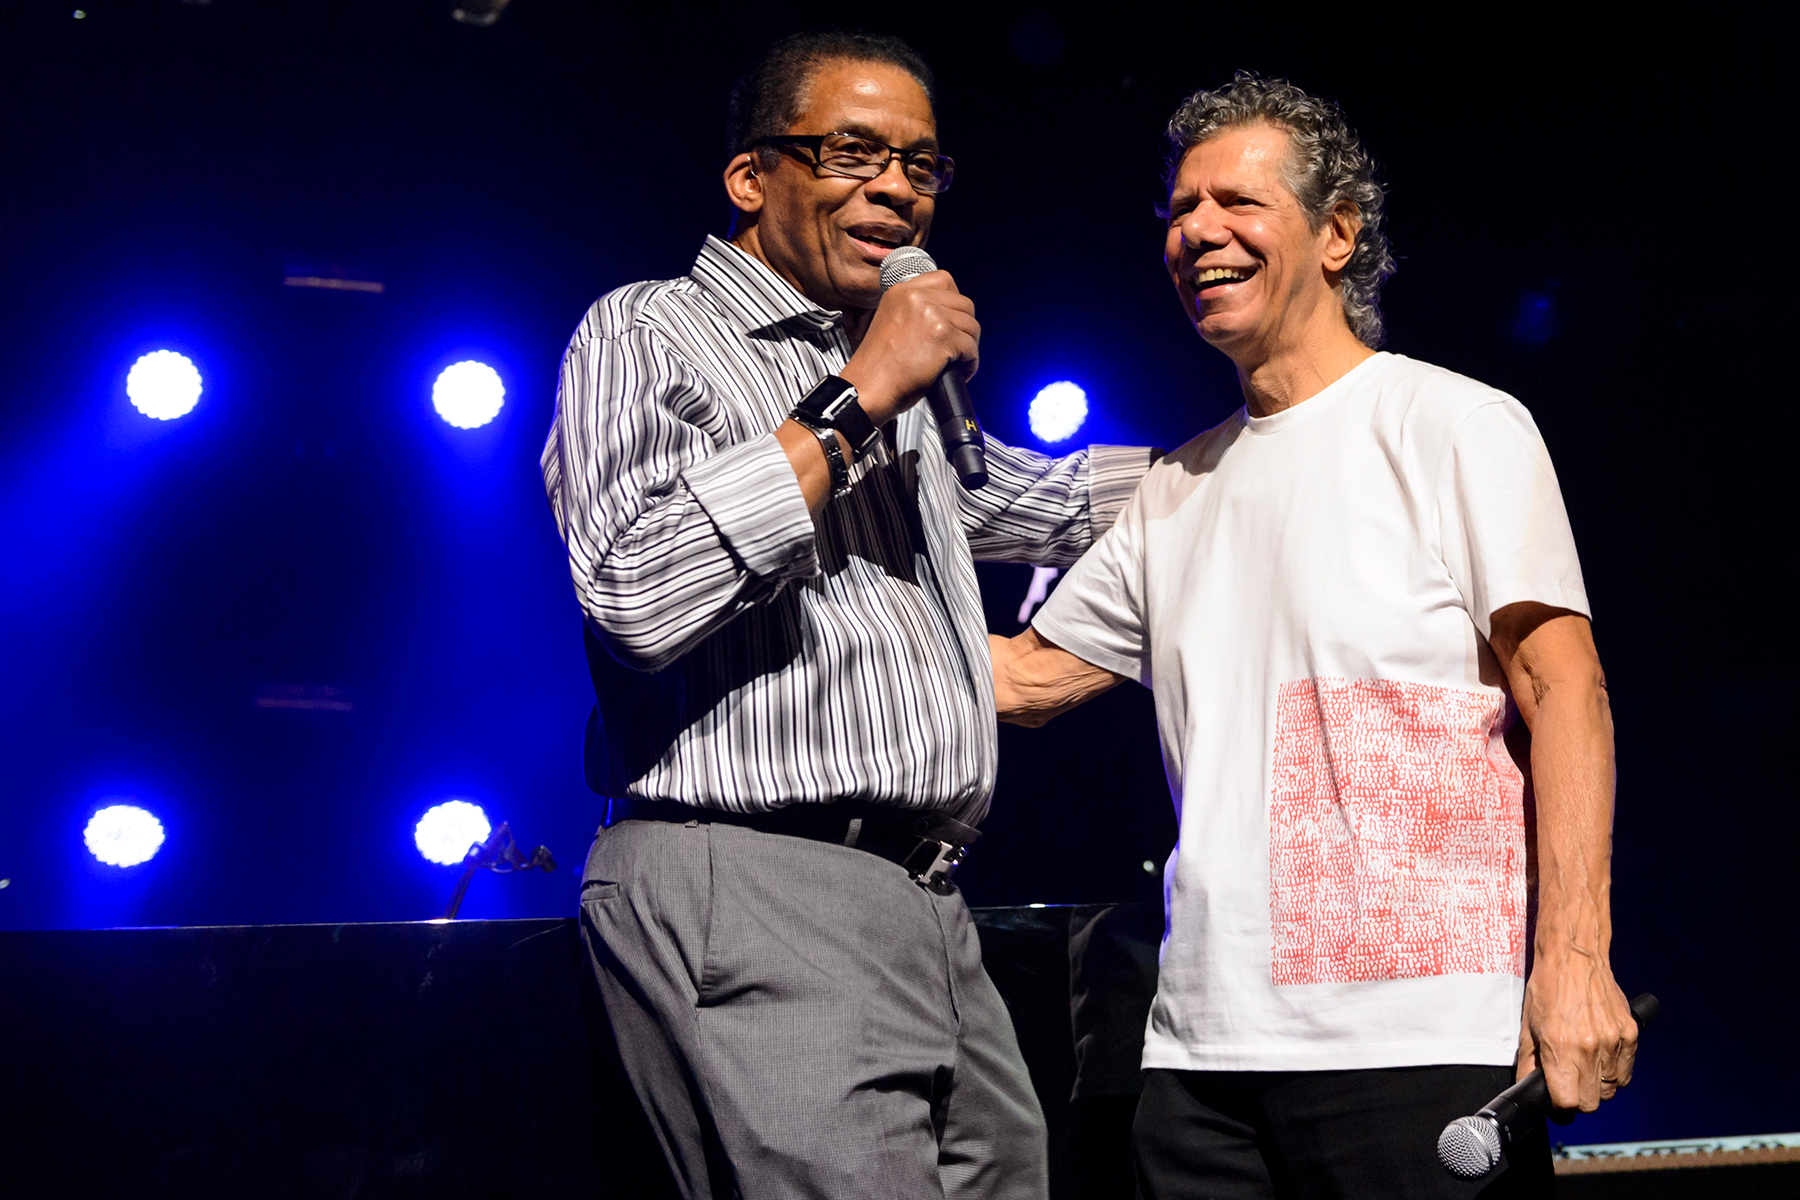 Herbie Hancock on Chick Corea: 'He Always Wanted to Share Whatever He Had'